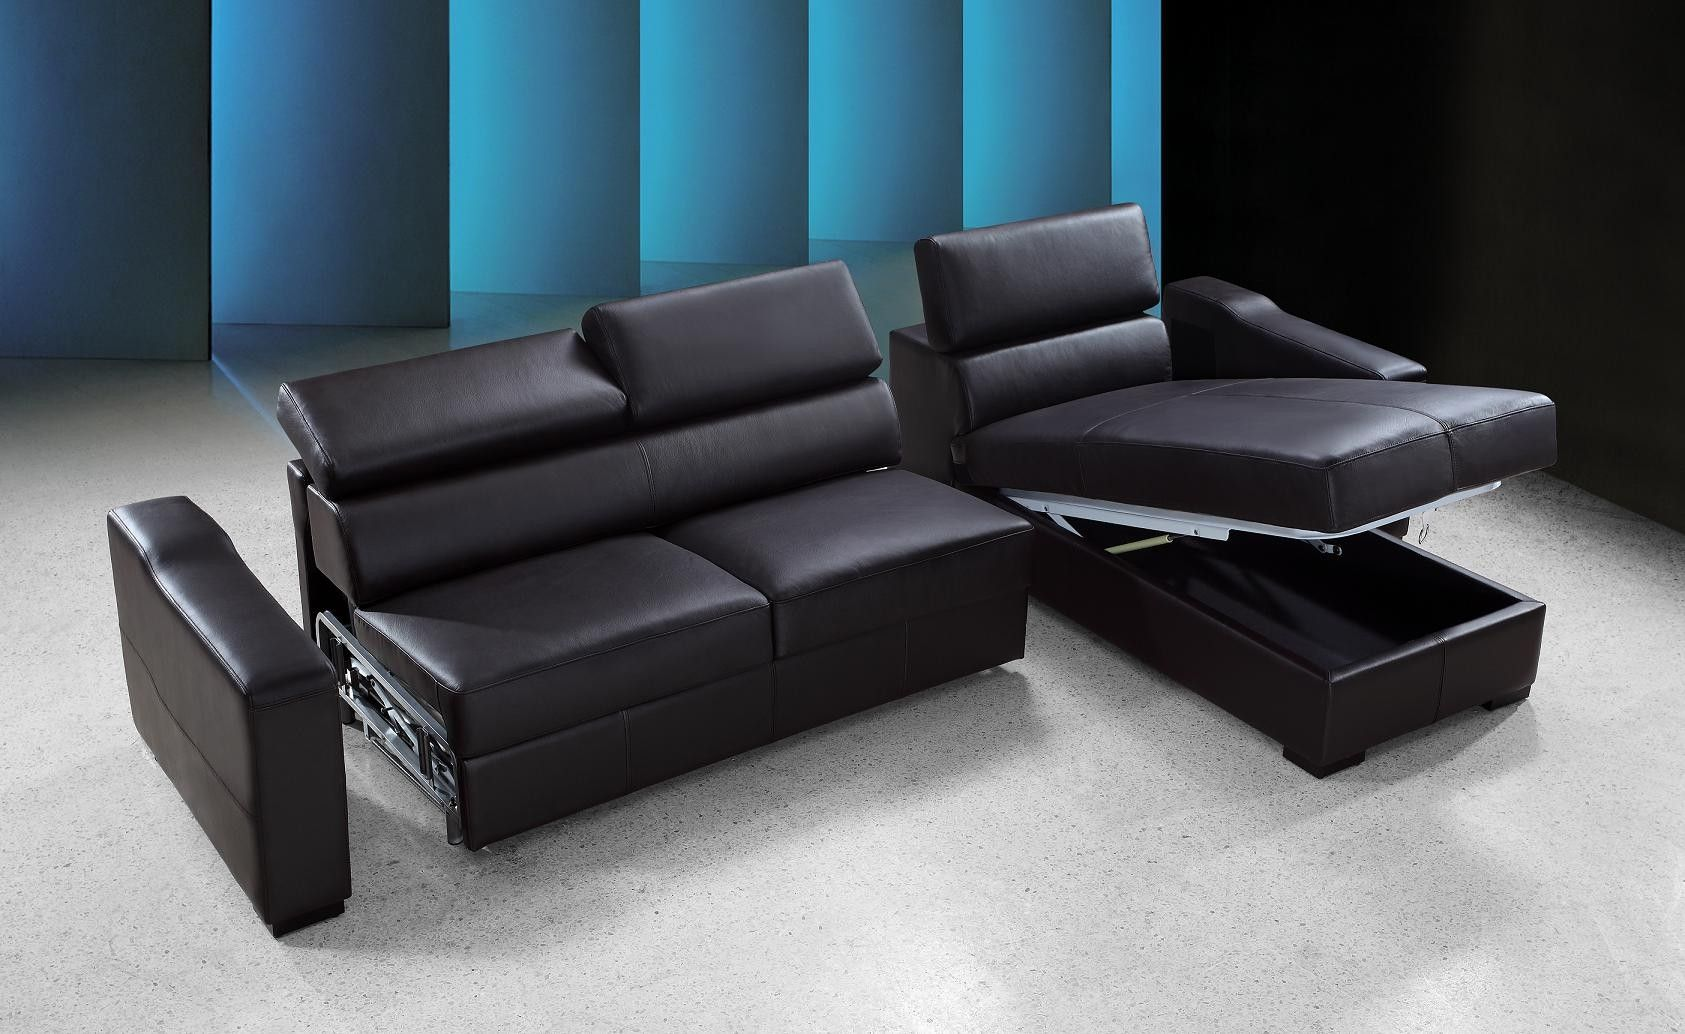 Sofas For Sale apartment sectional sofa bed